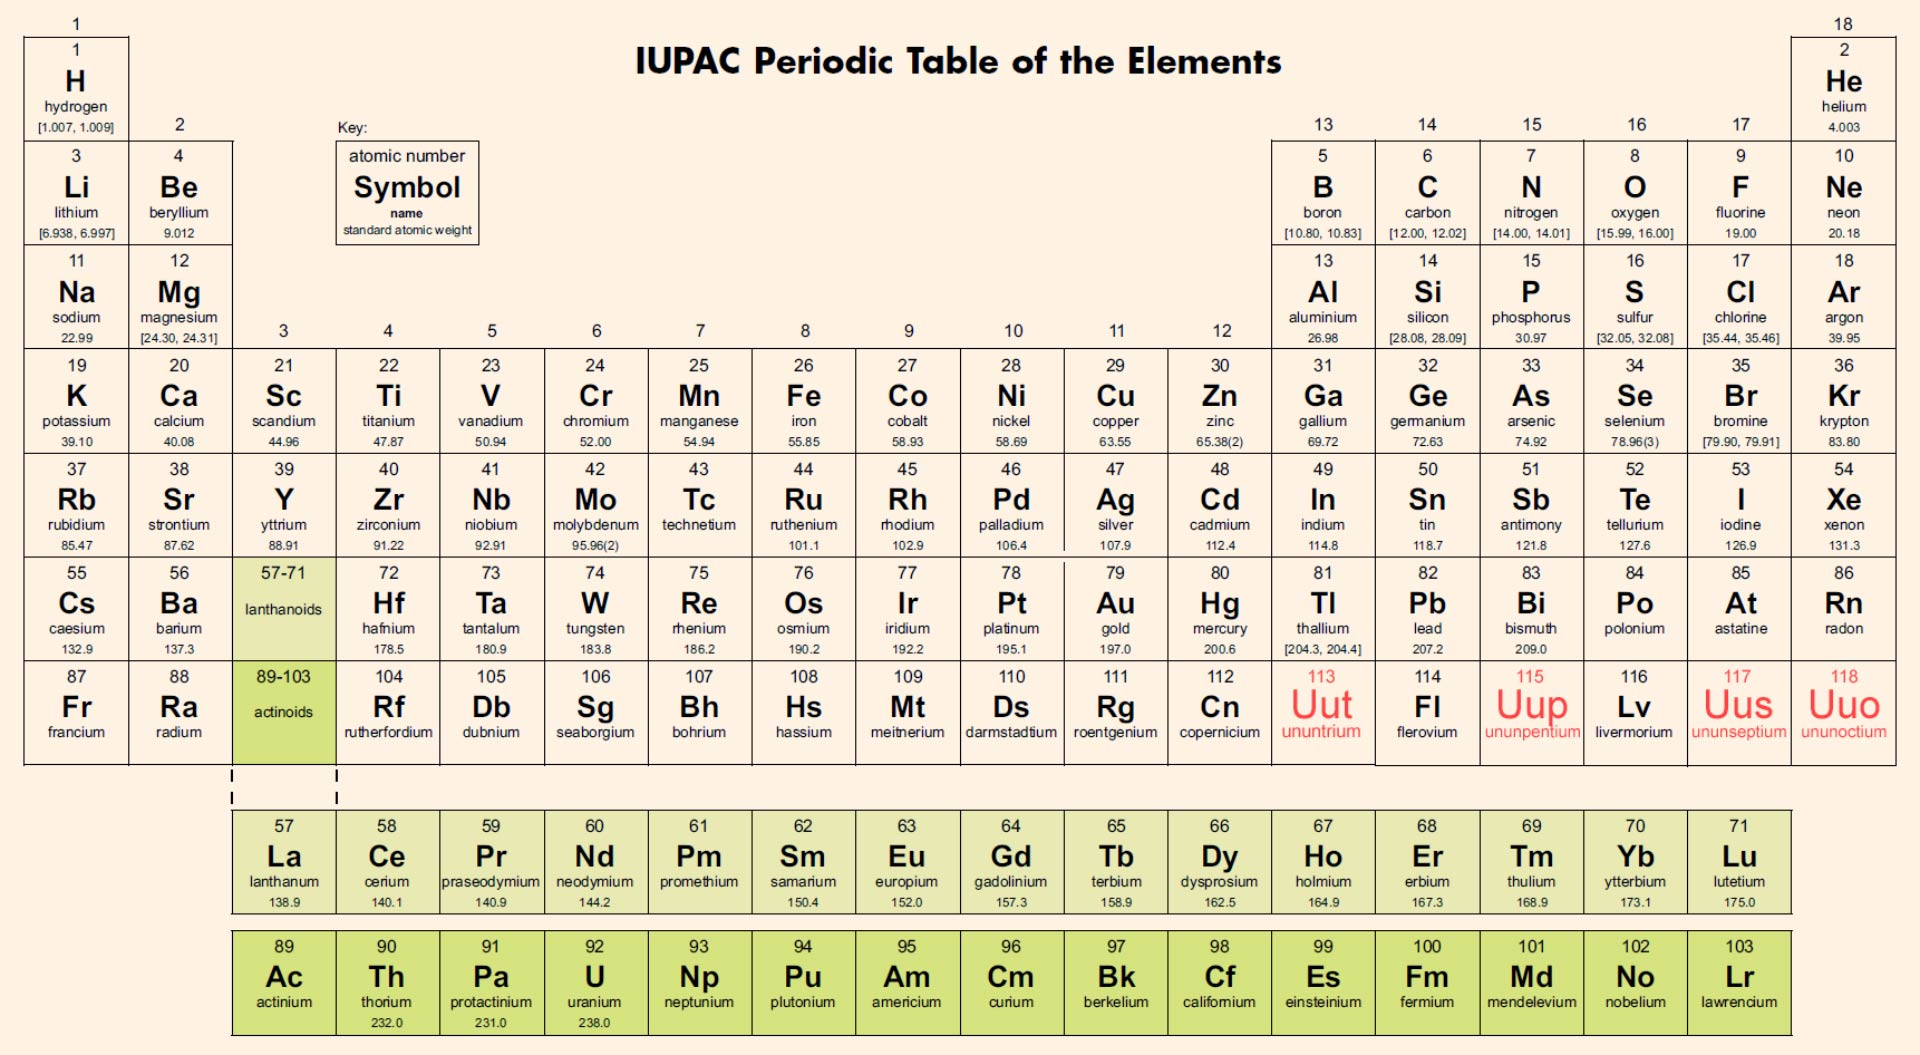 Iupac periodic table of the elements helpful colin for Periodic table 85 elements